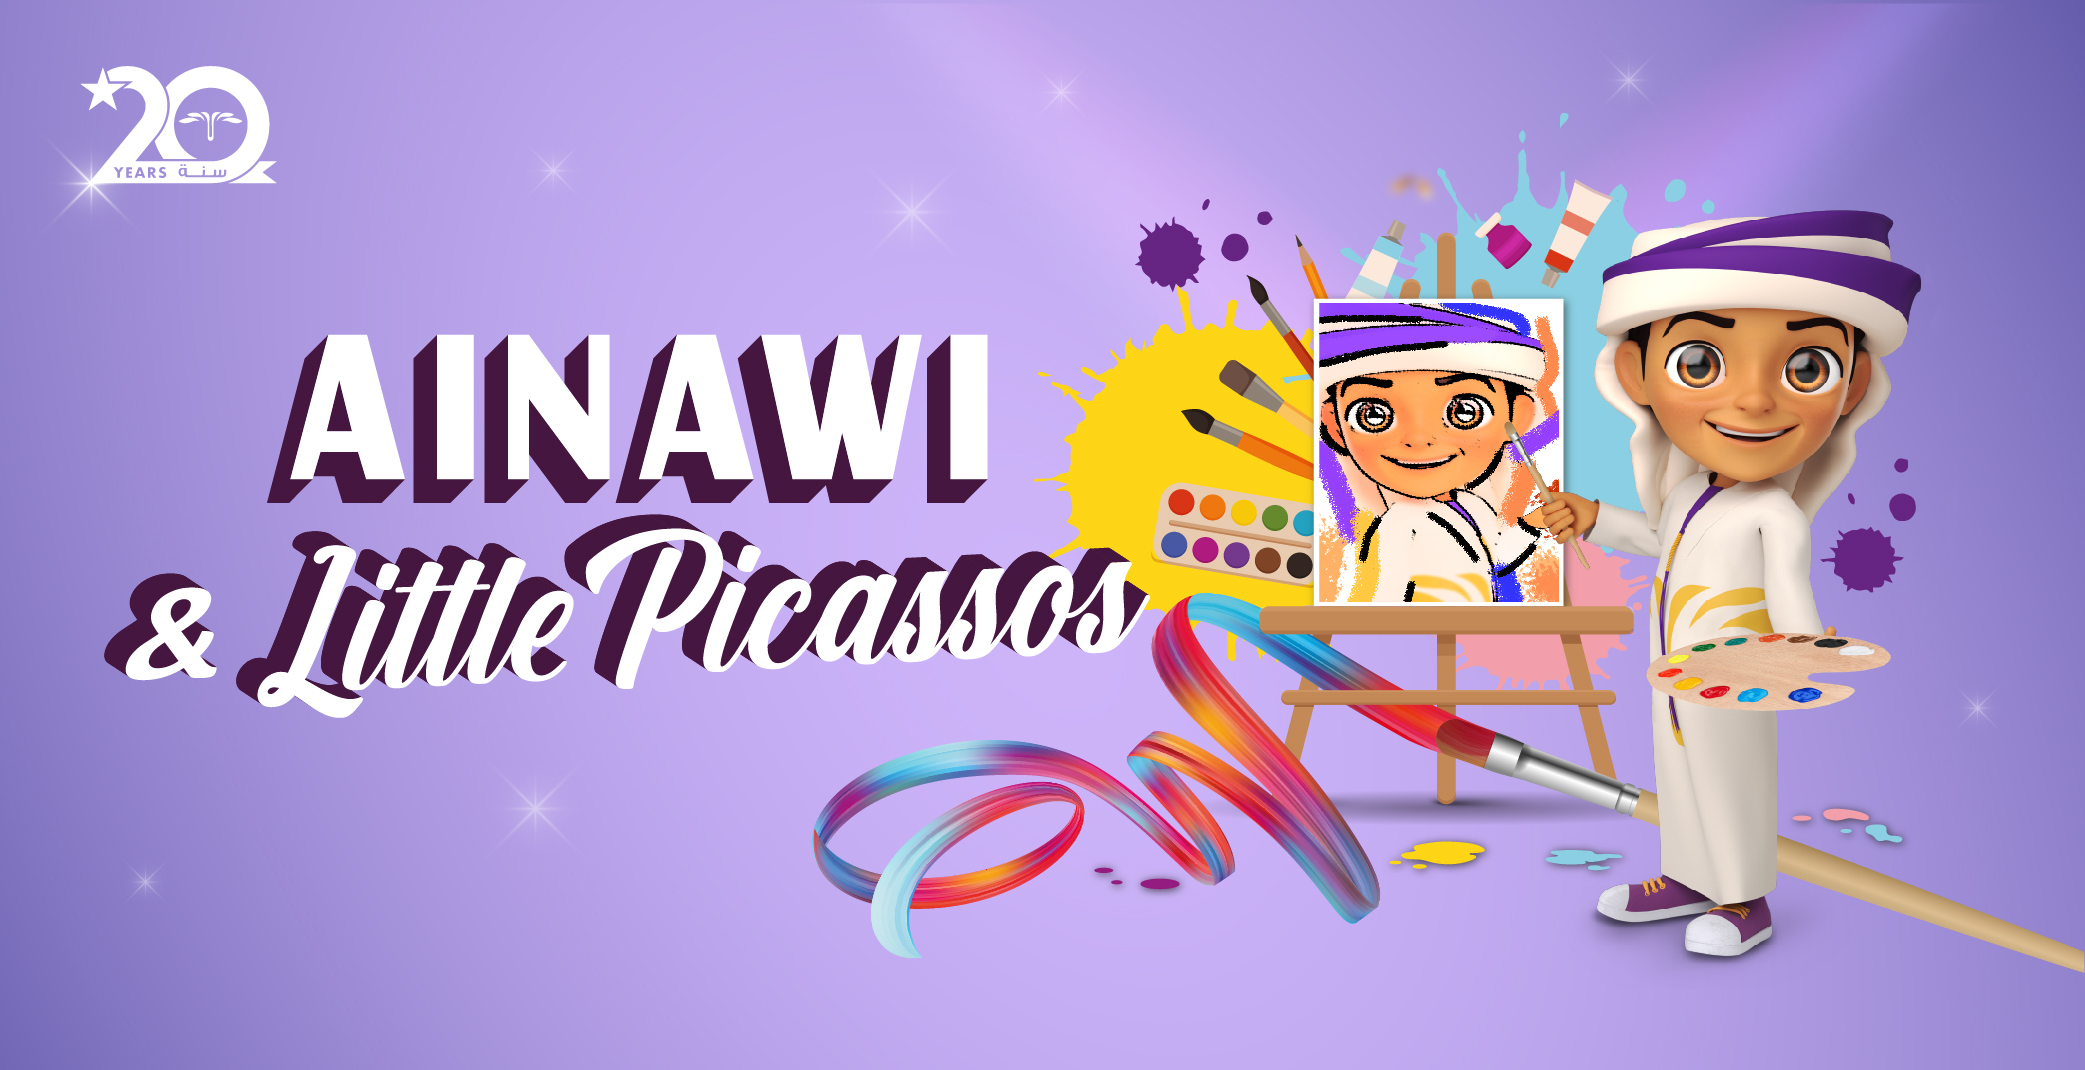 Ainawi & Little Picassos